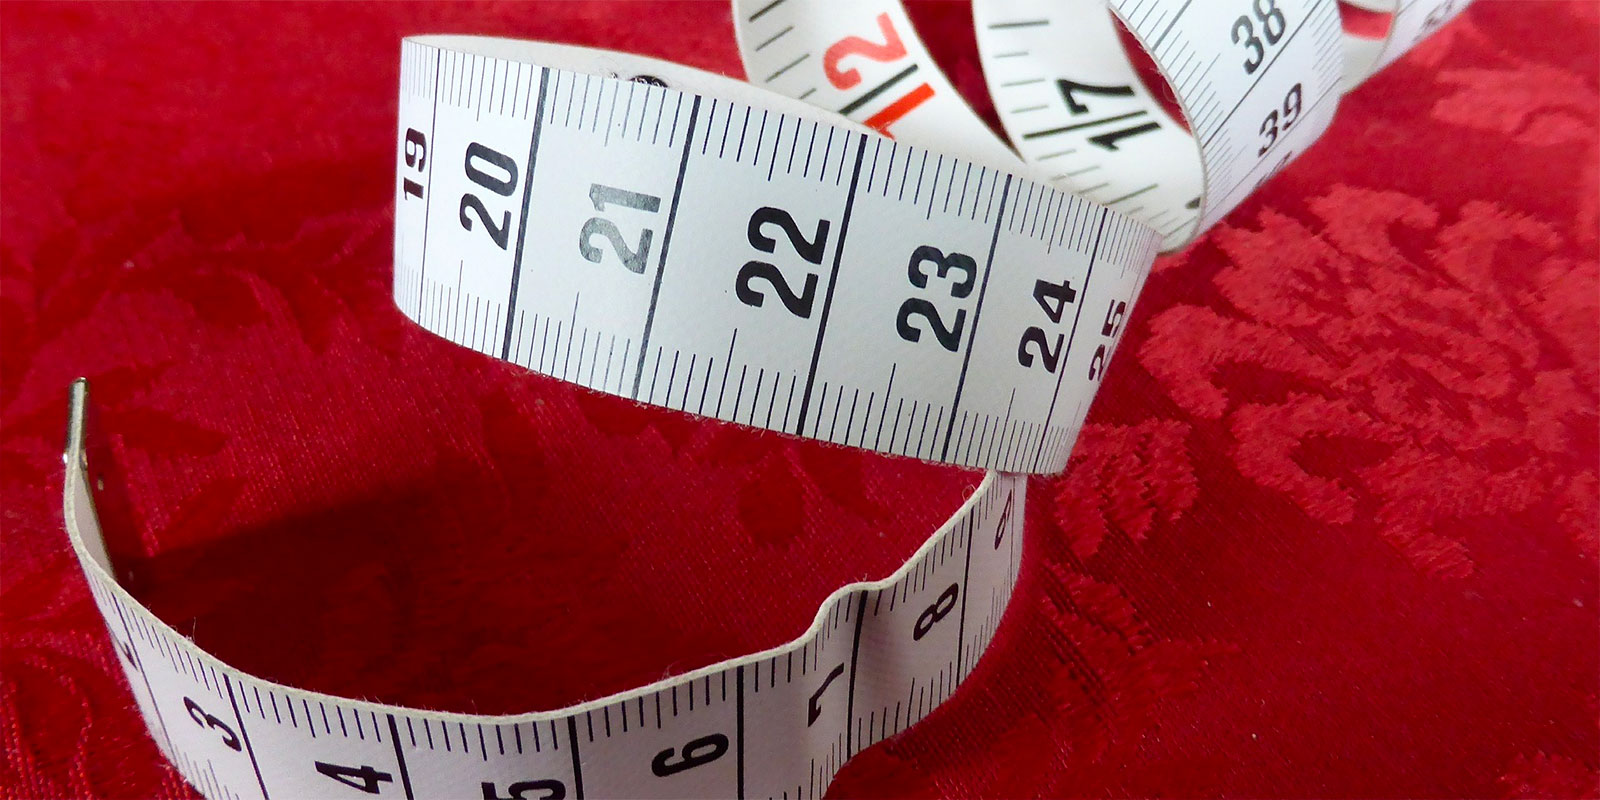 11 Random Findings in a Study of Penis Sizes Around the World